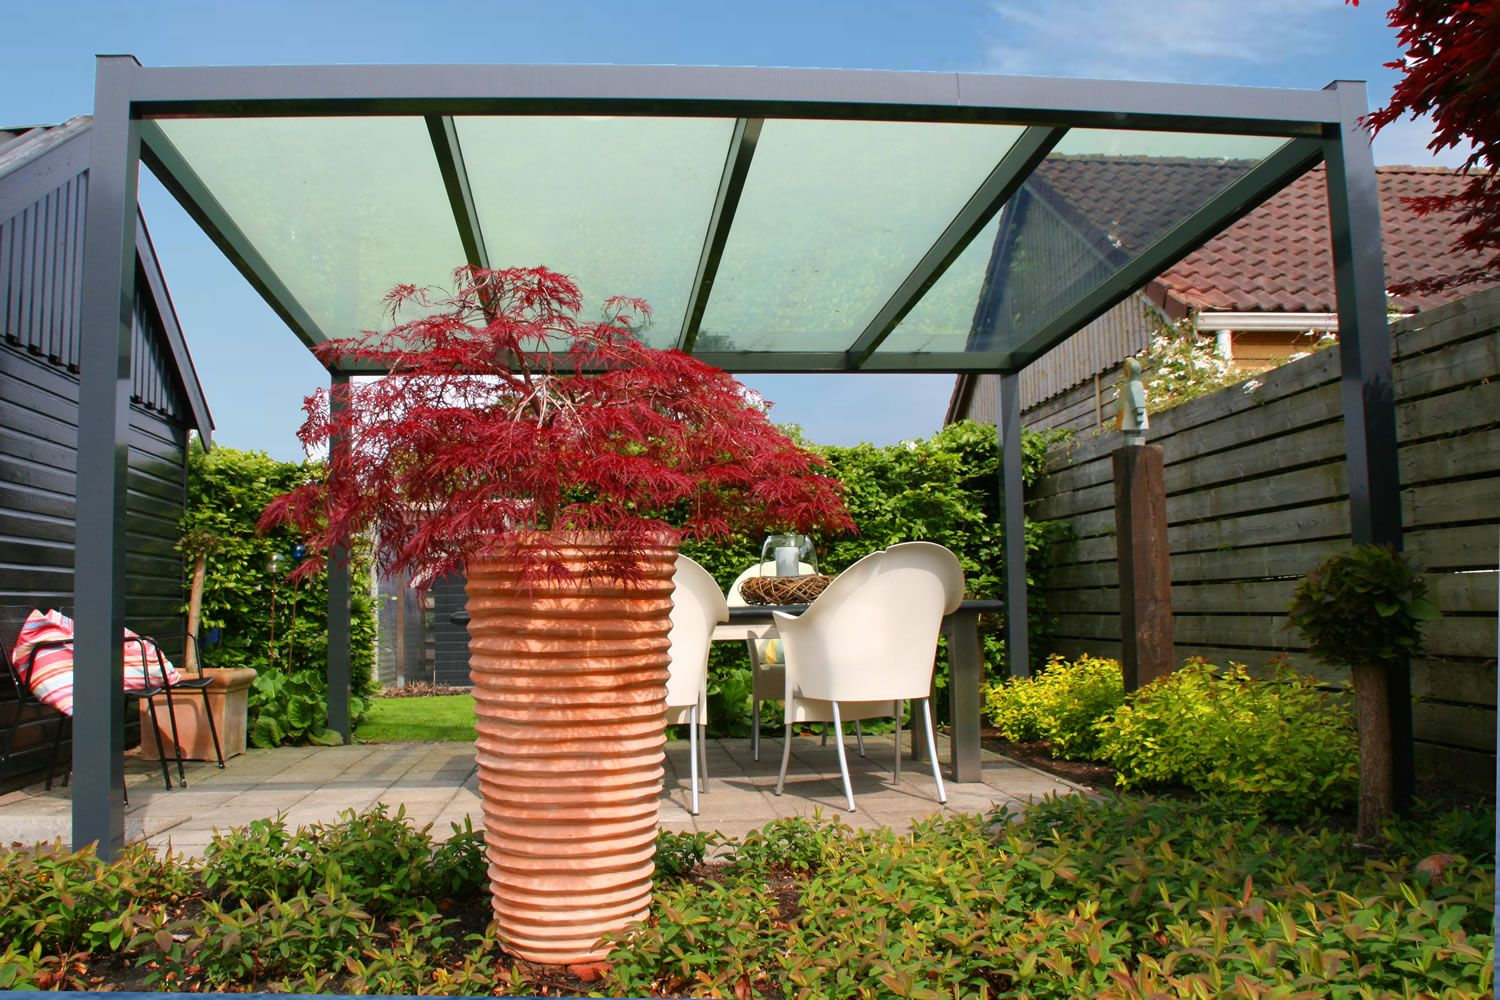 aluminium 1500 1000 pergole altany pinterest best modern gazebo gazebo. Black Bedroom Furniture Sets. Home Design Ideas